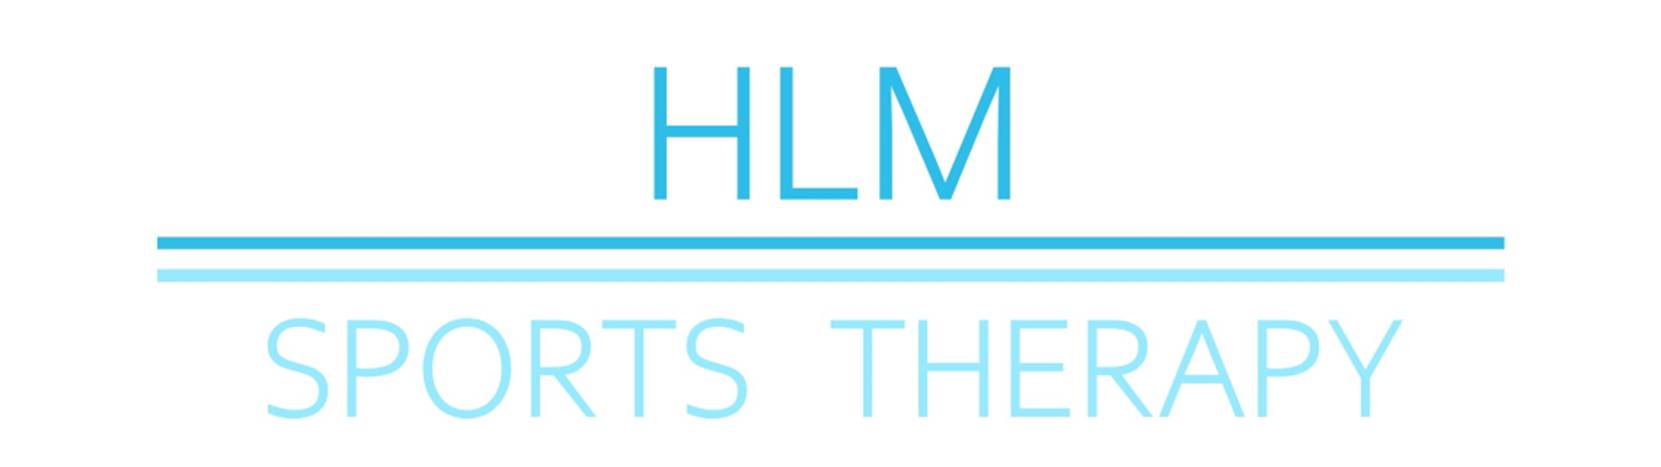 HLM Sports Therapy